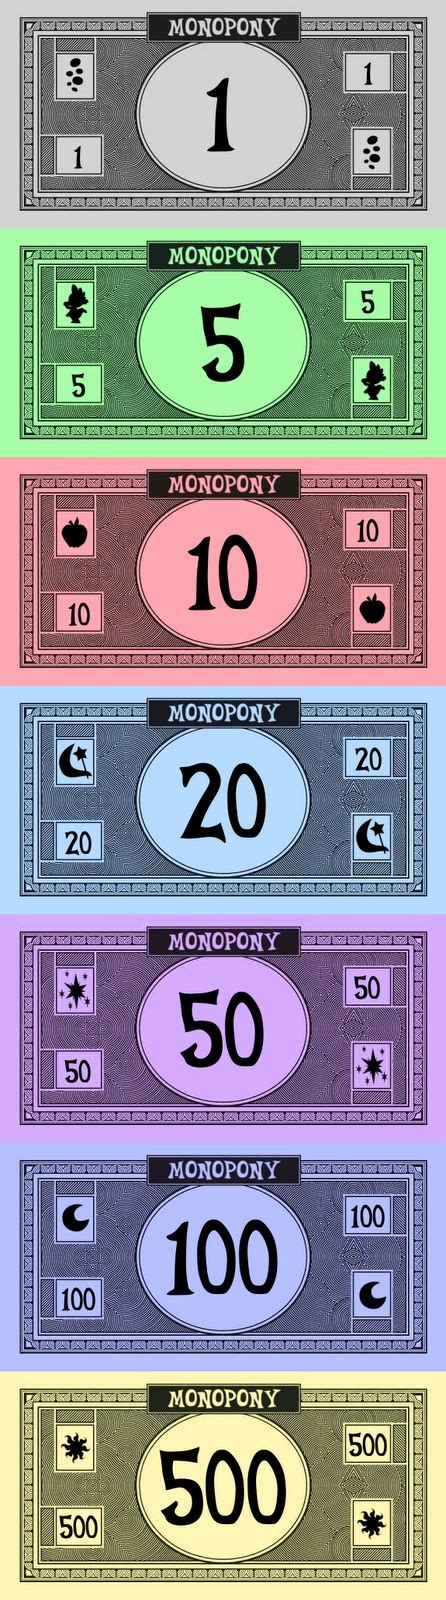 18 best monopoly game images on pinterest